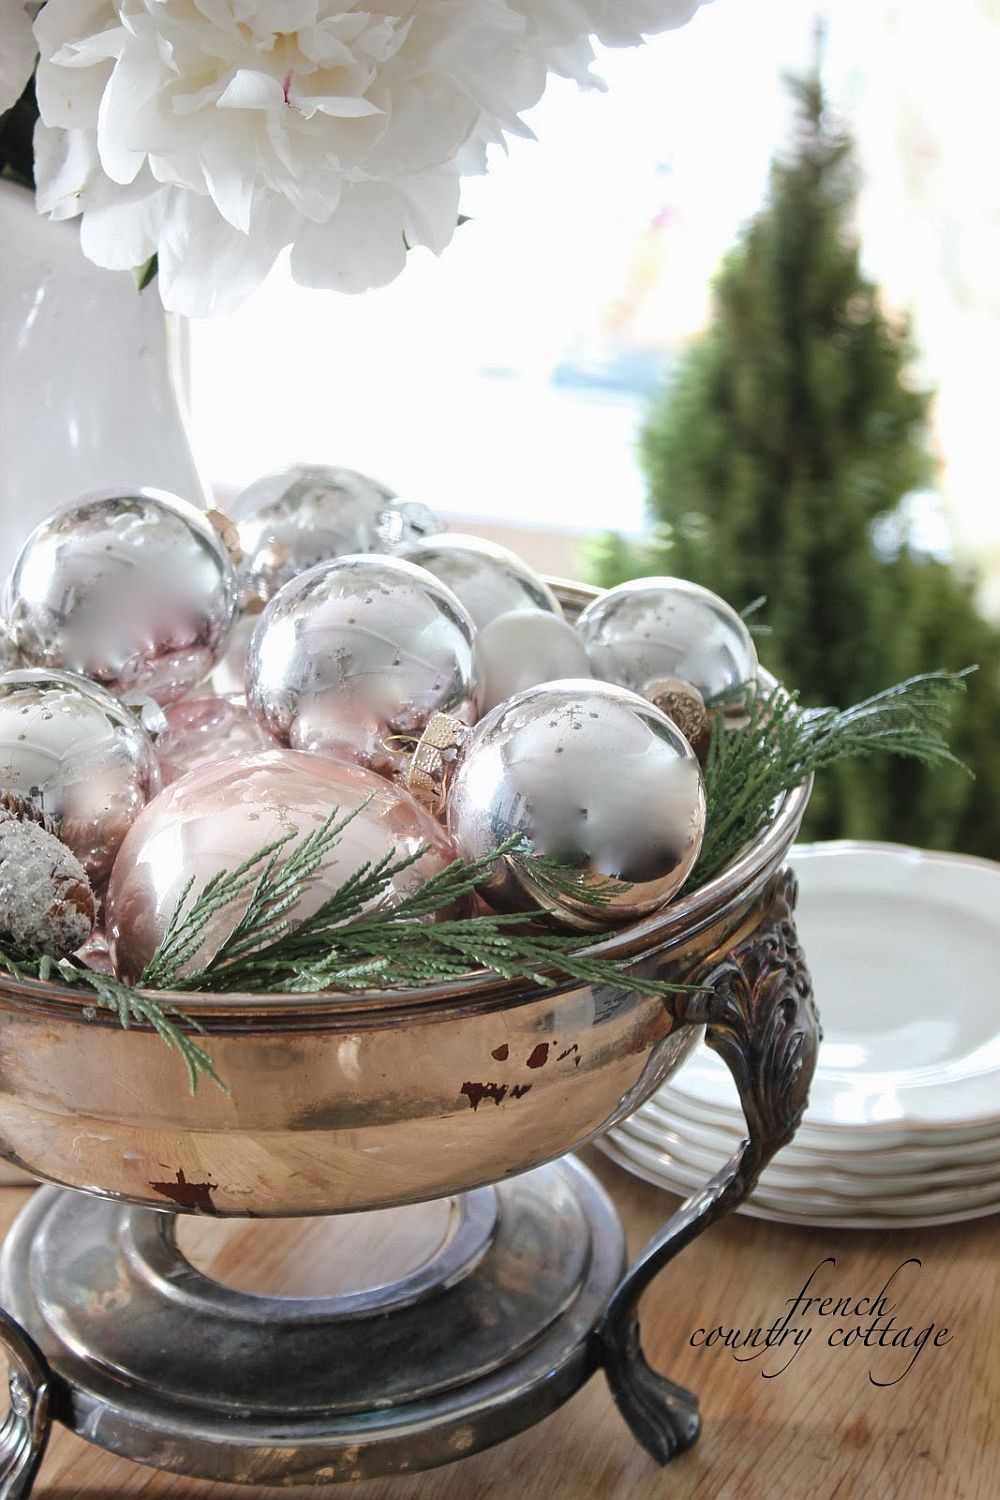 Sparkling Christmas ornaments in a bowl make for an easy decorative piece